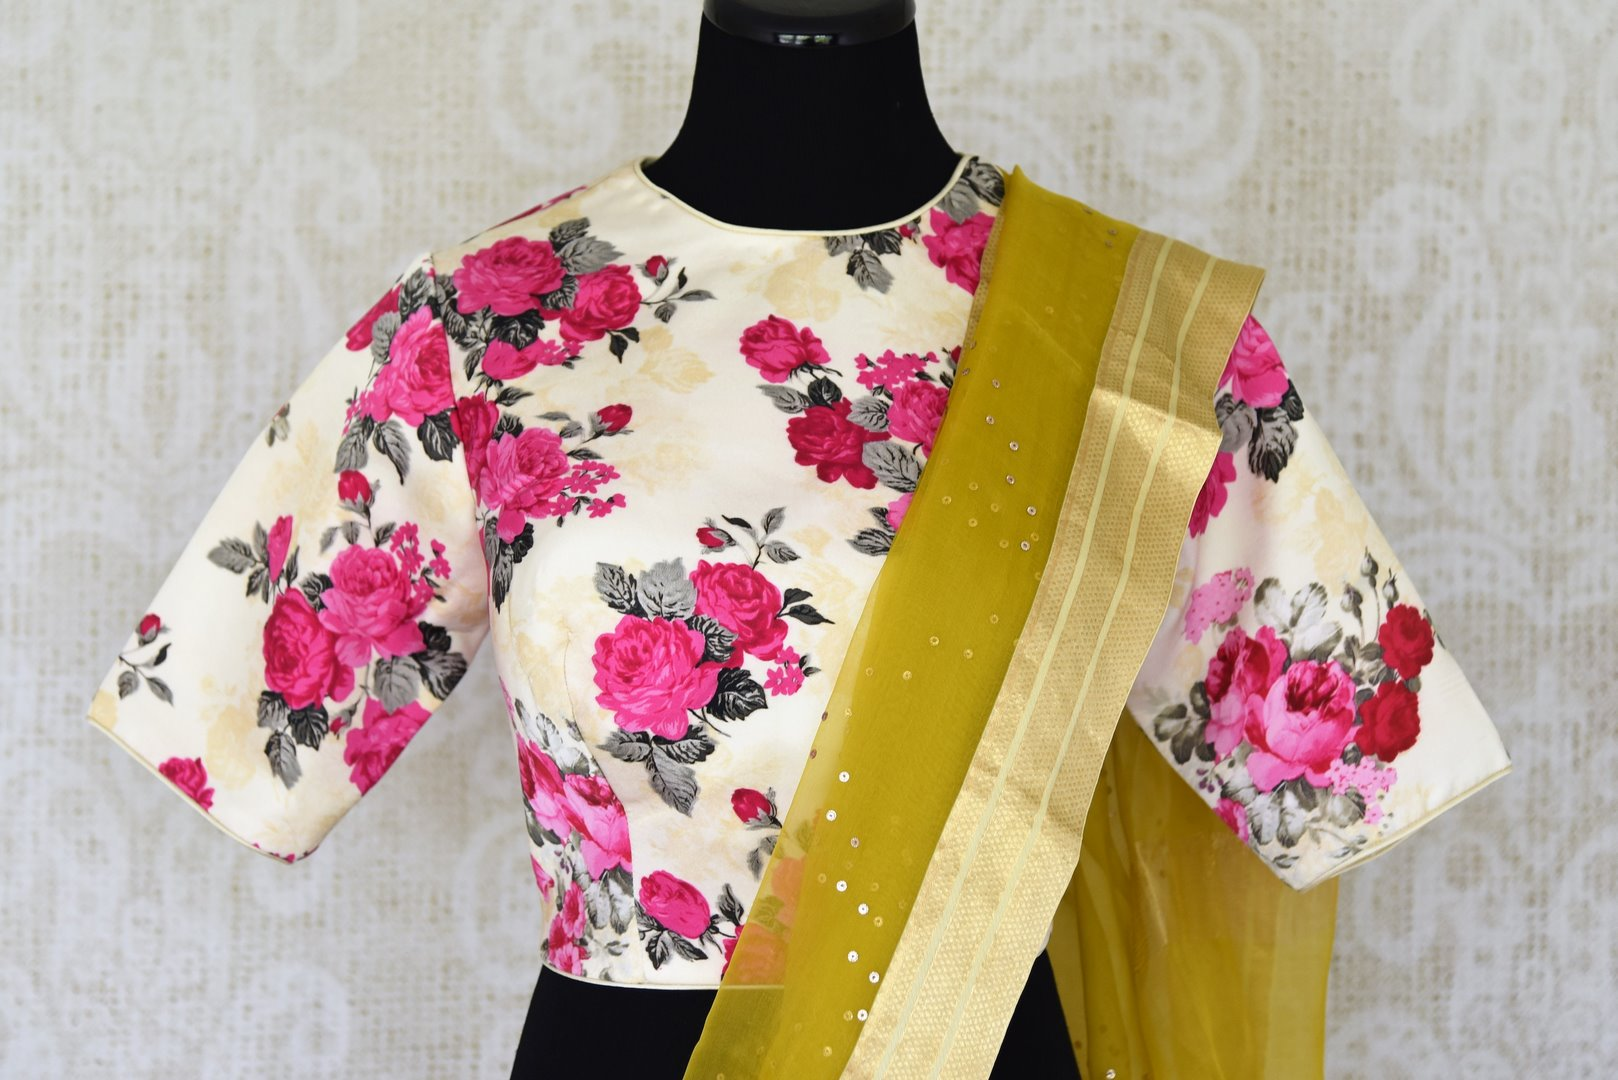 Buy mehendi color organza silk saree with zari border online in USA. It comes with a beautiful floral print designer saree blouse. Take your Indian style a notch up with a range of beautiful Indian clothing from Pure Elegance. We have a range of traditional Indian sarees, designer sarees in USA online and our fashion store.-blouse pallu